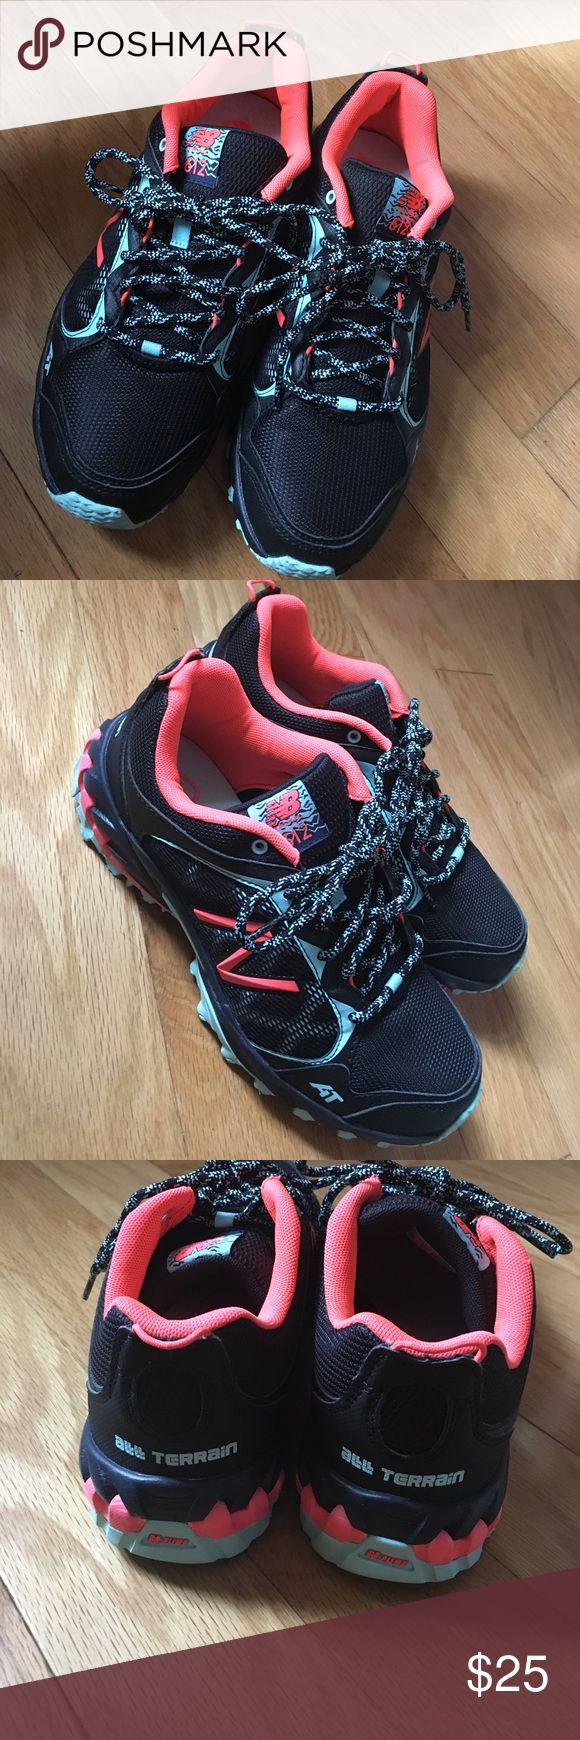 New Balance AT all terrain black sneaker NEW Brand new never worn size 8 in woman's black with aqua and coral accents. NB trail 612 AT all terrain sneakers. Price is firm as I am selling so low just to get them cleared out of my closet. New Balance Shoes Sneakers